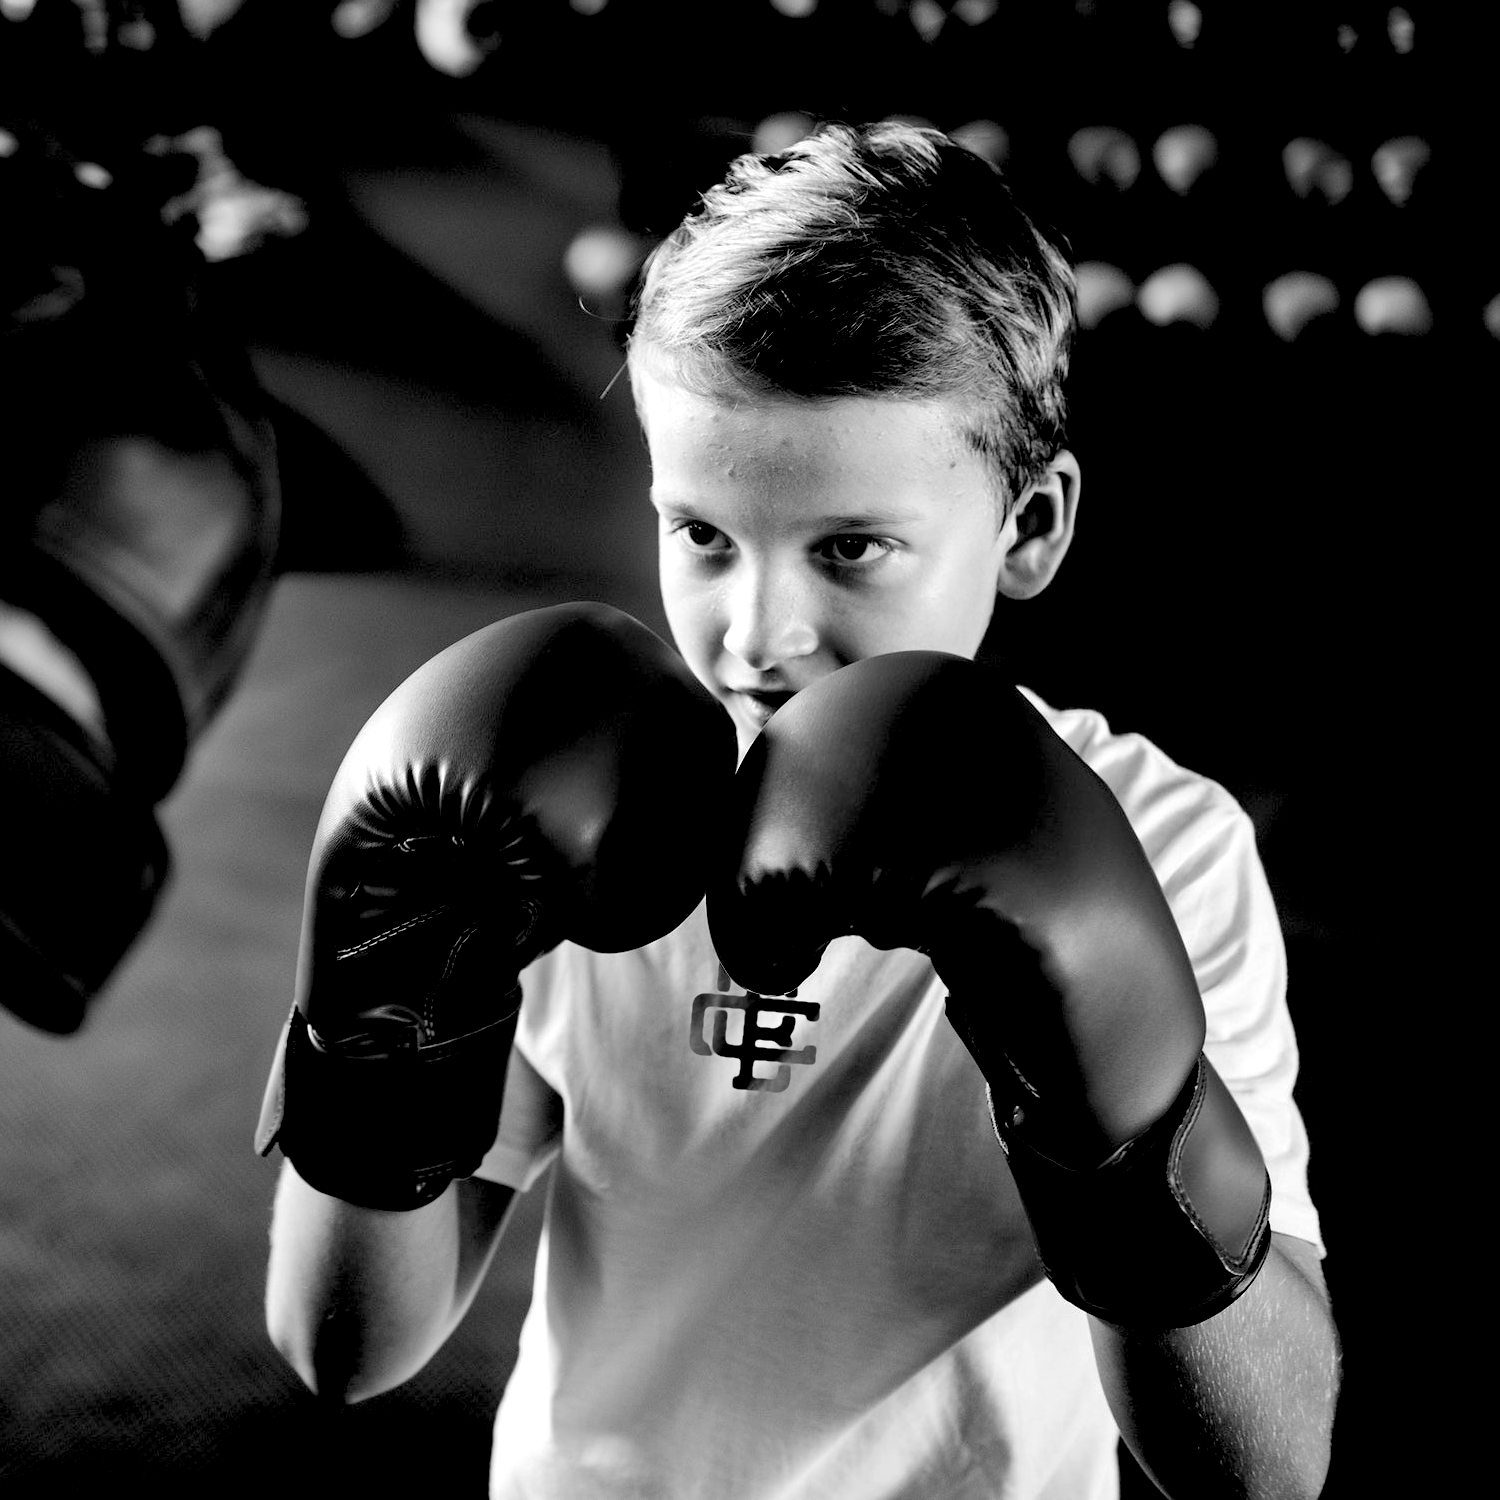 KID's & YOUTH BOXING - A fun, safe & confidence building program.